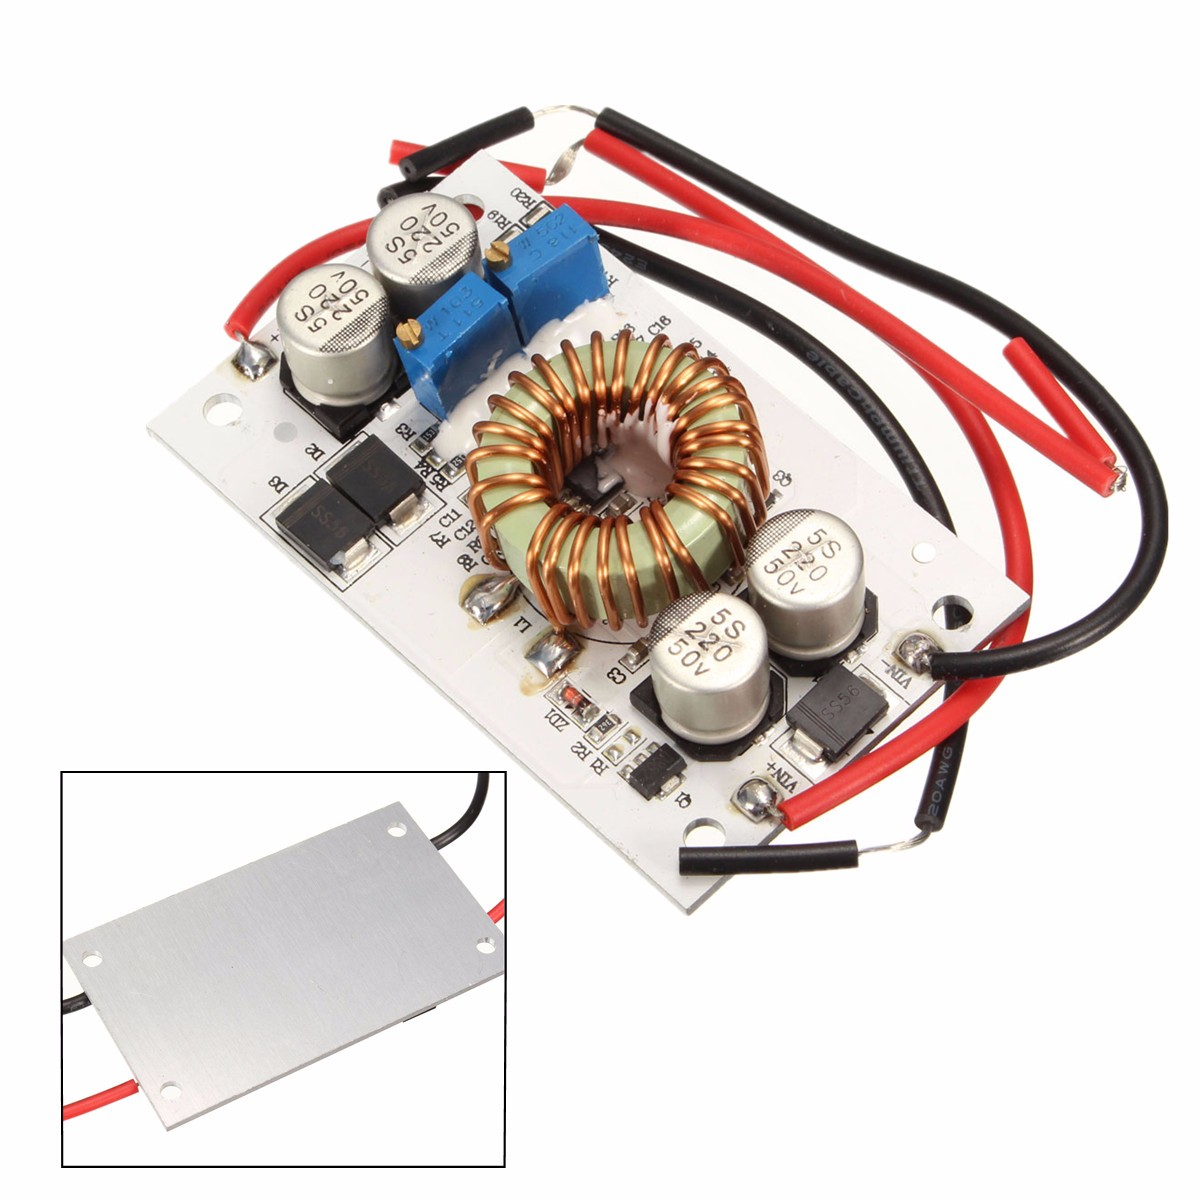 250W Adjustable DC-DC Boost Step-up Constant Current Power Supply 10A LED Driver Hot New Arrival High Quality Modules Board(China (Mainland))